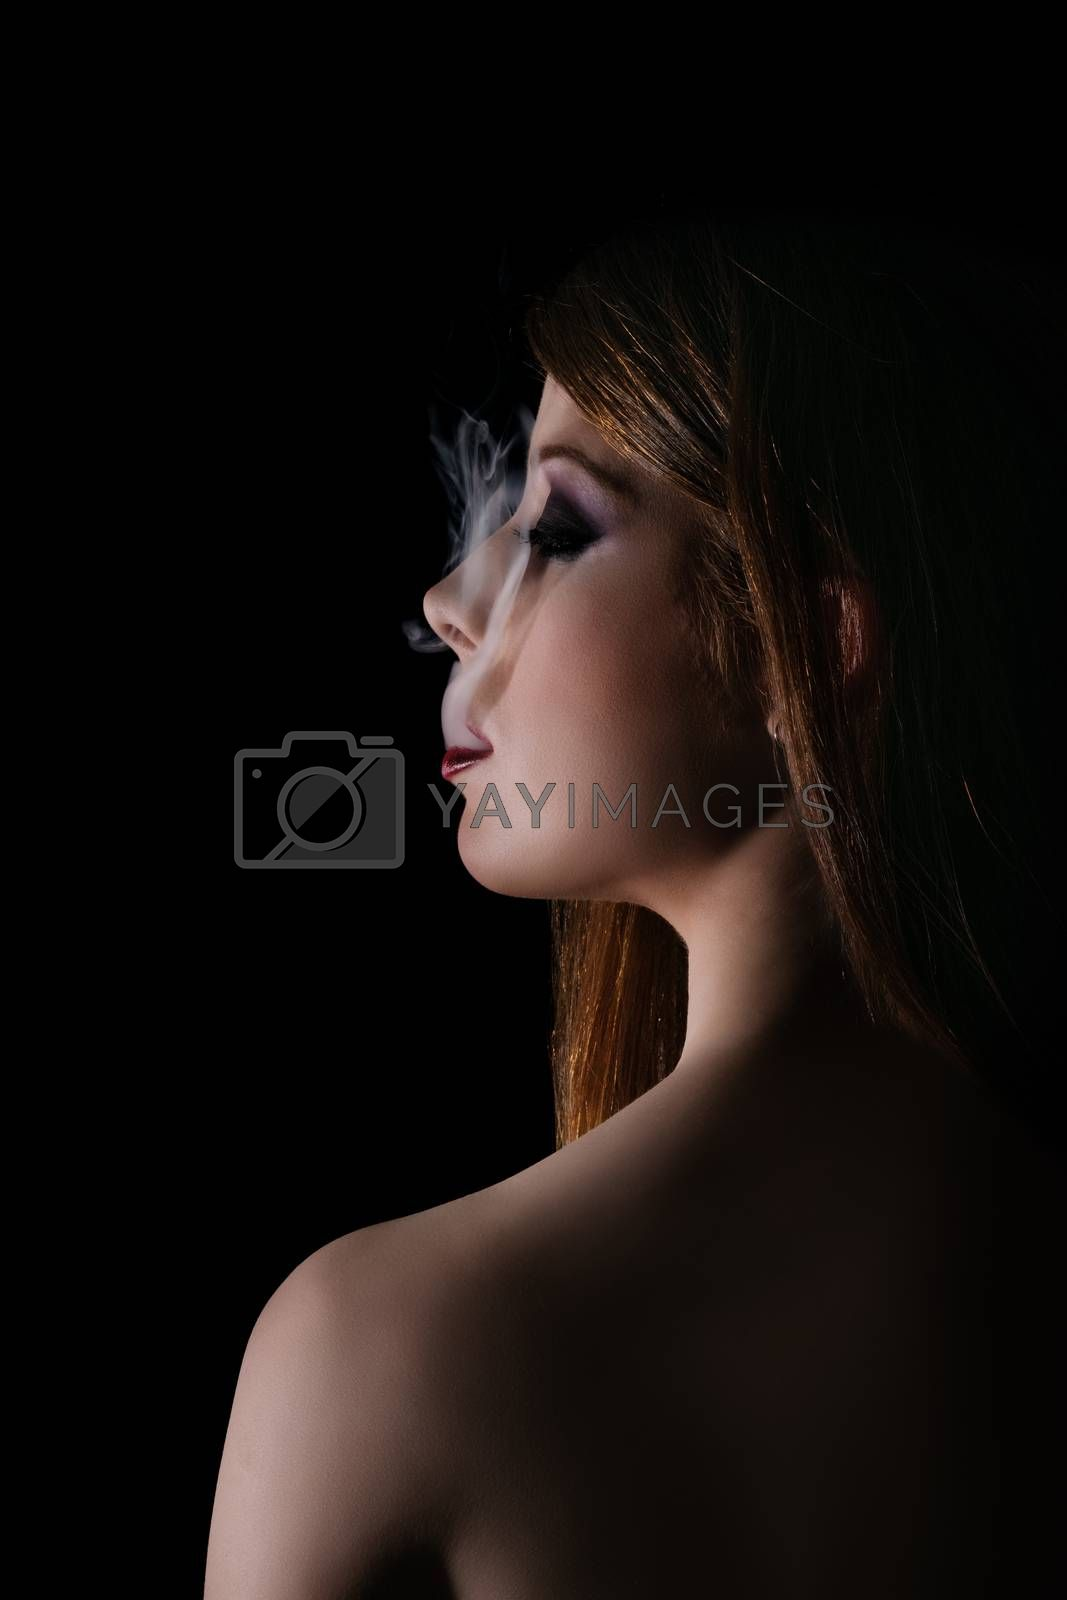 Low key profile shot of a gorgeous young woman with smokey eye makeup and red lipstick, smoke coming out of her mouth, isolated on black background. Smoking concept. Night, beauty, mystery, gothic style, fashion concept.